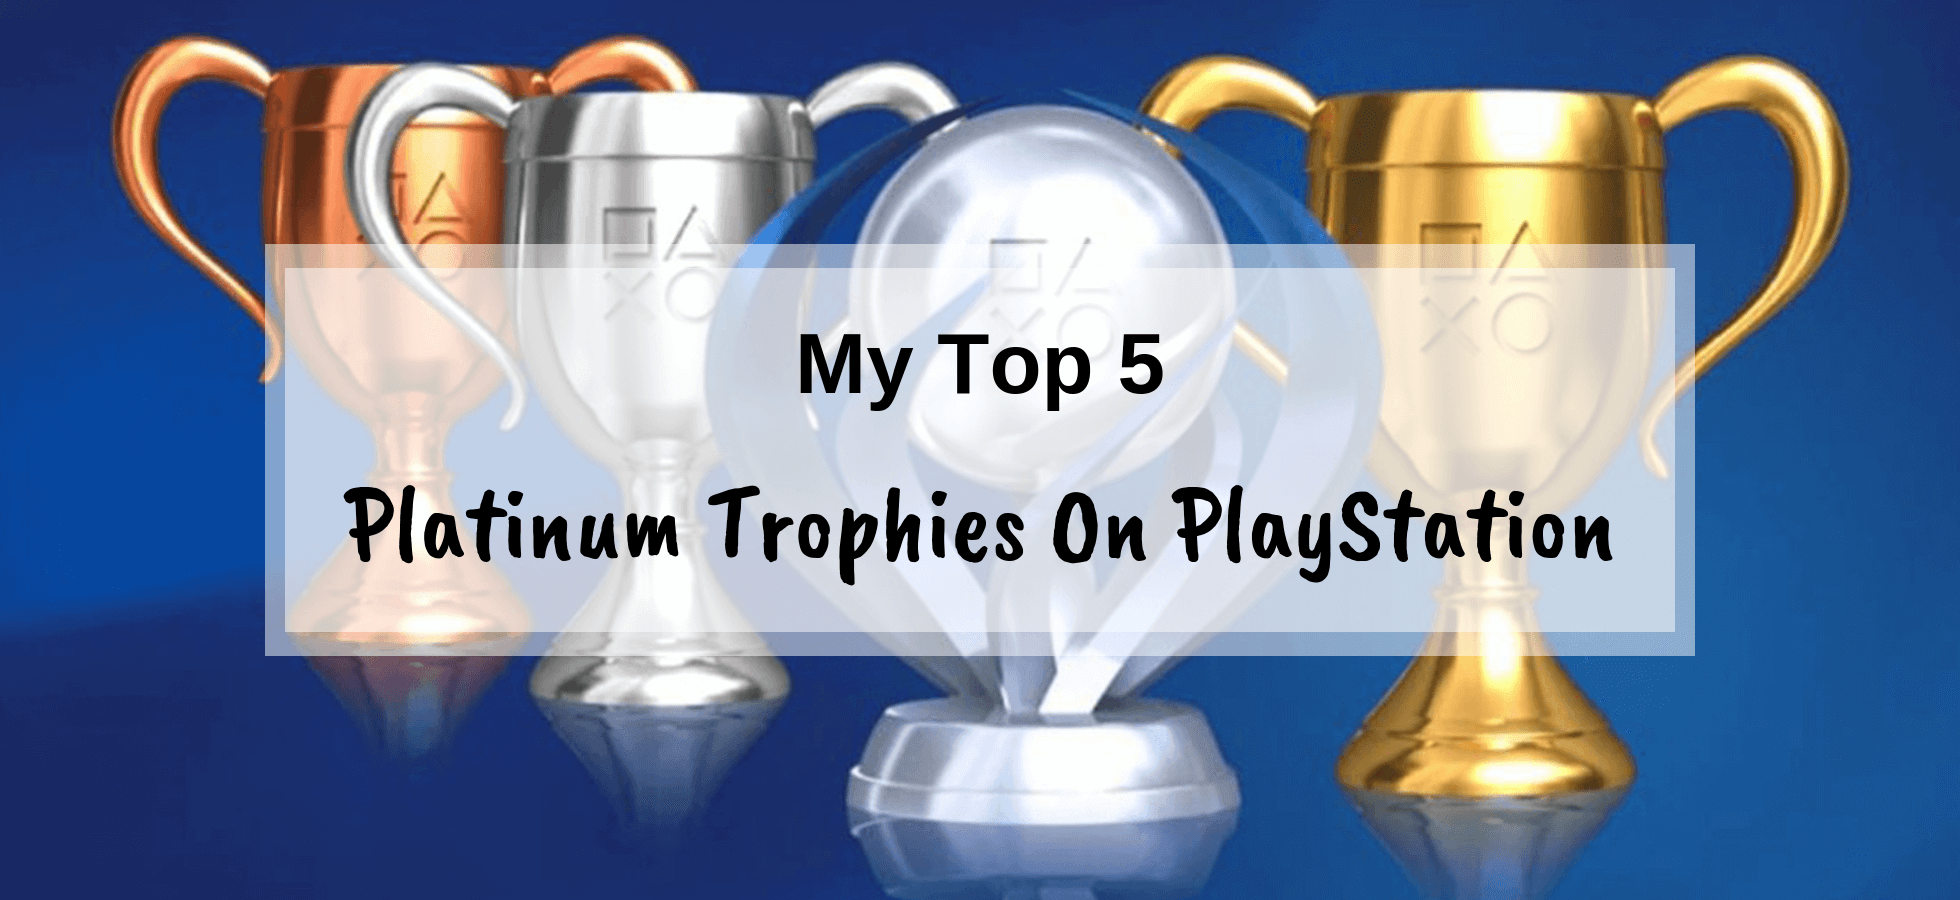 My top 5 platinum trophies on PlayStation